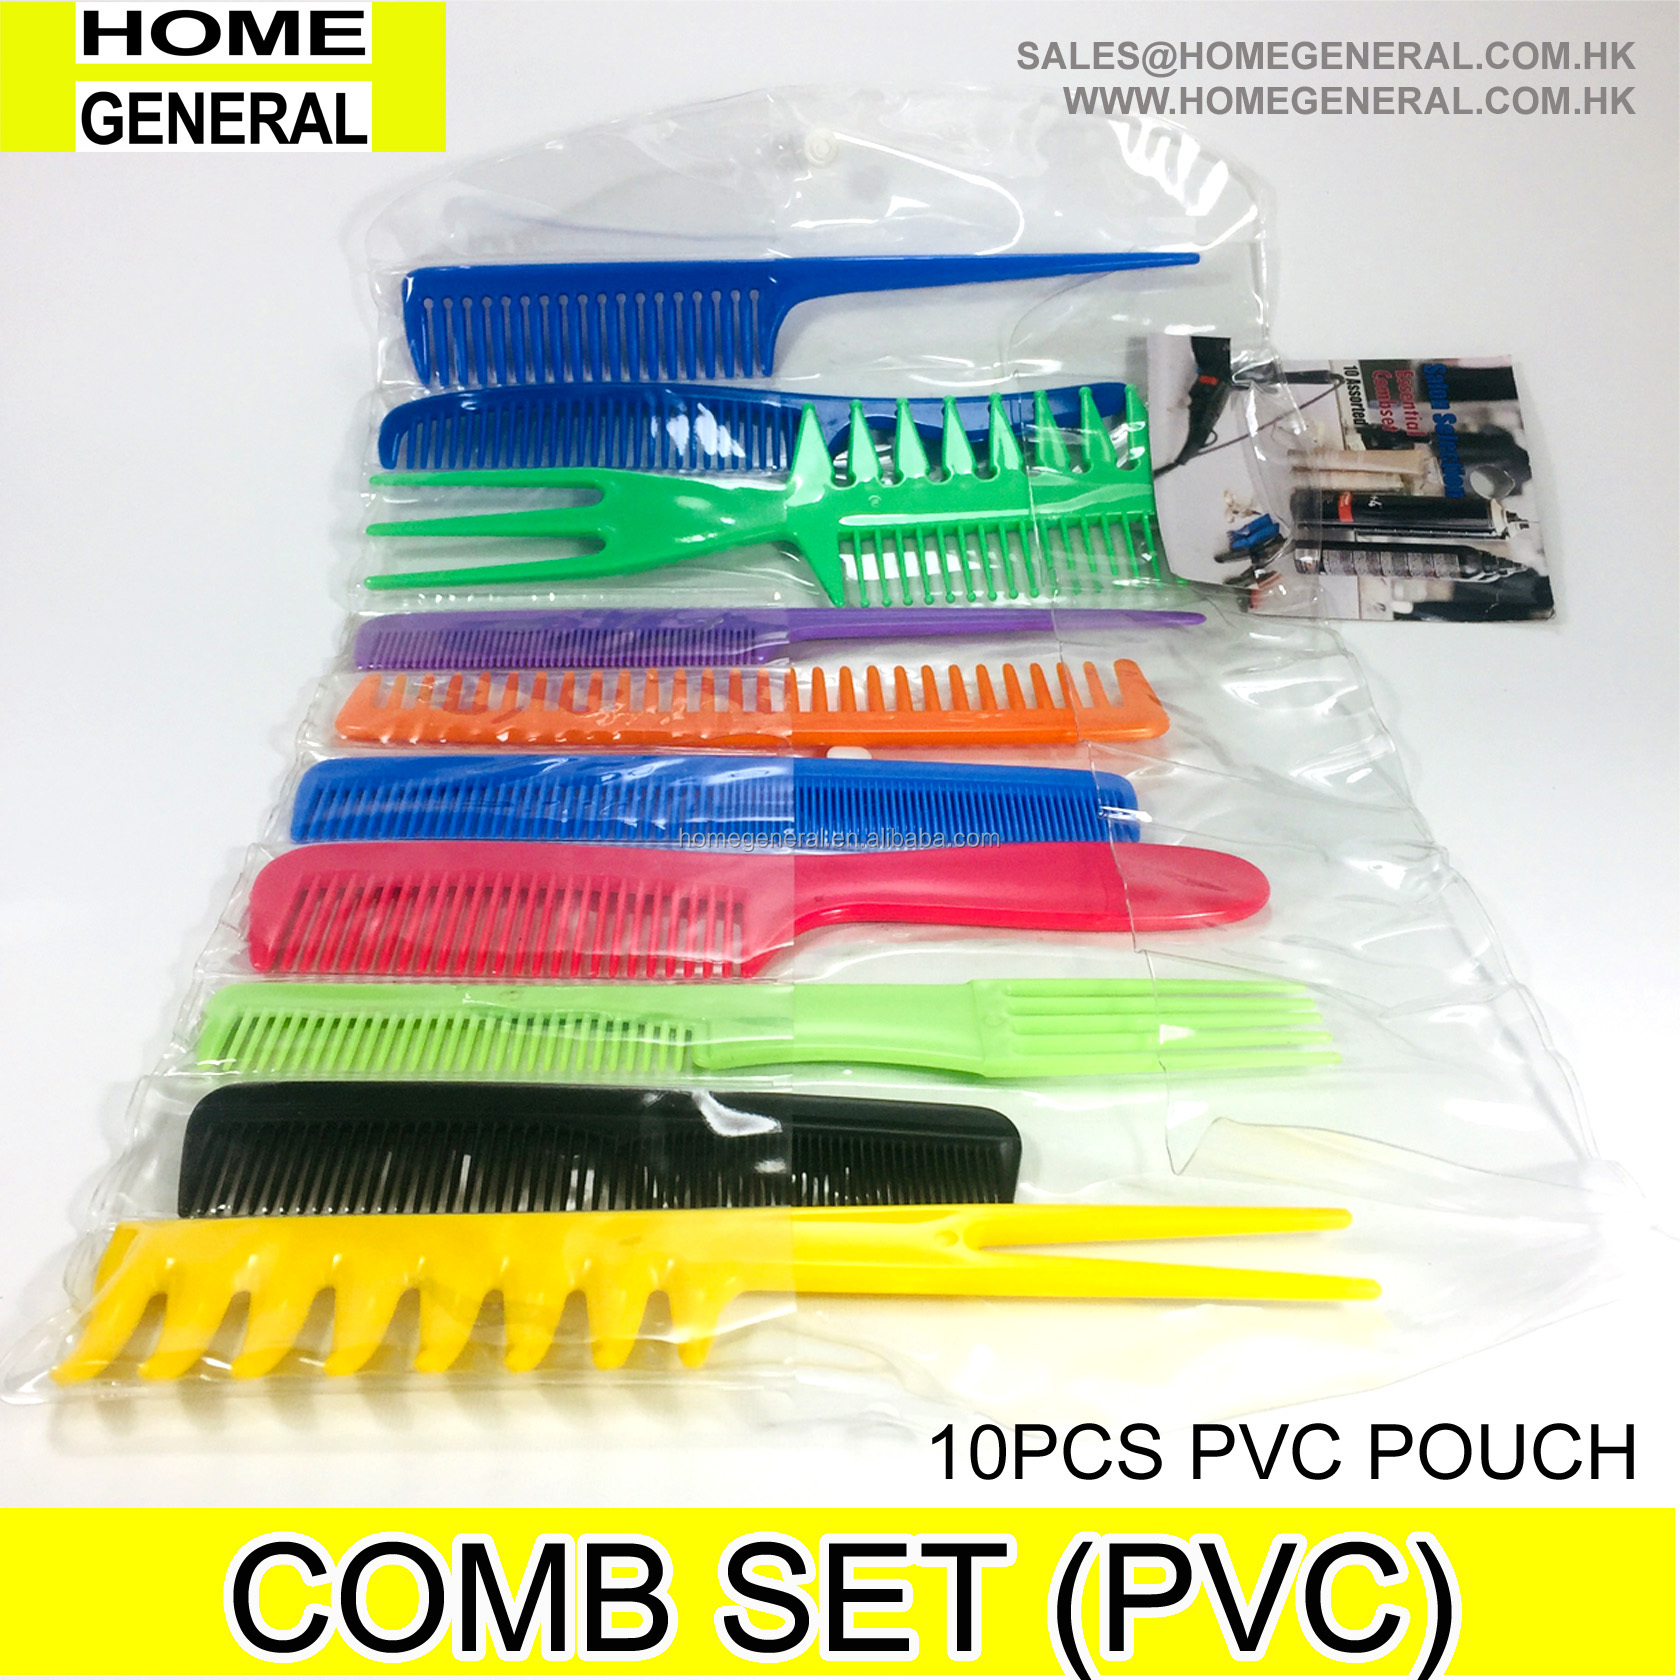 10PCS FAMILY COMB SET (PVC POUCH)